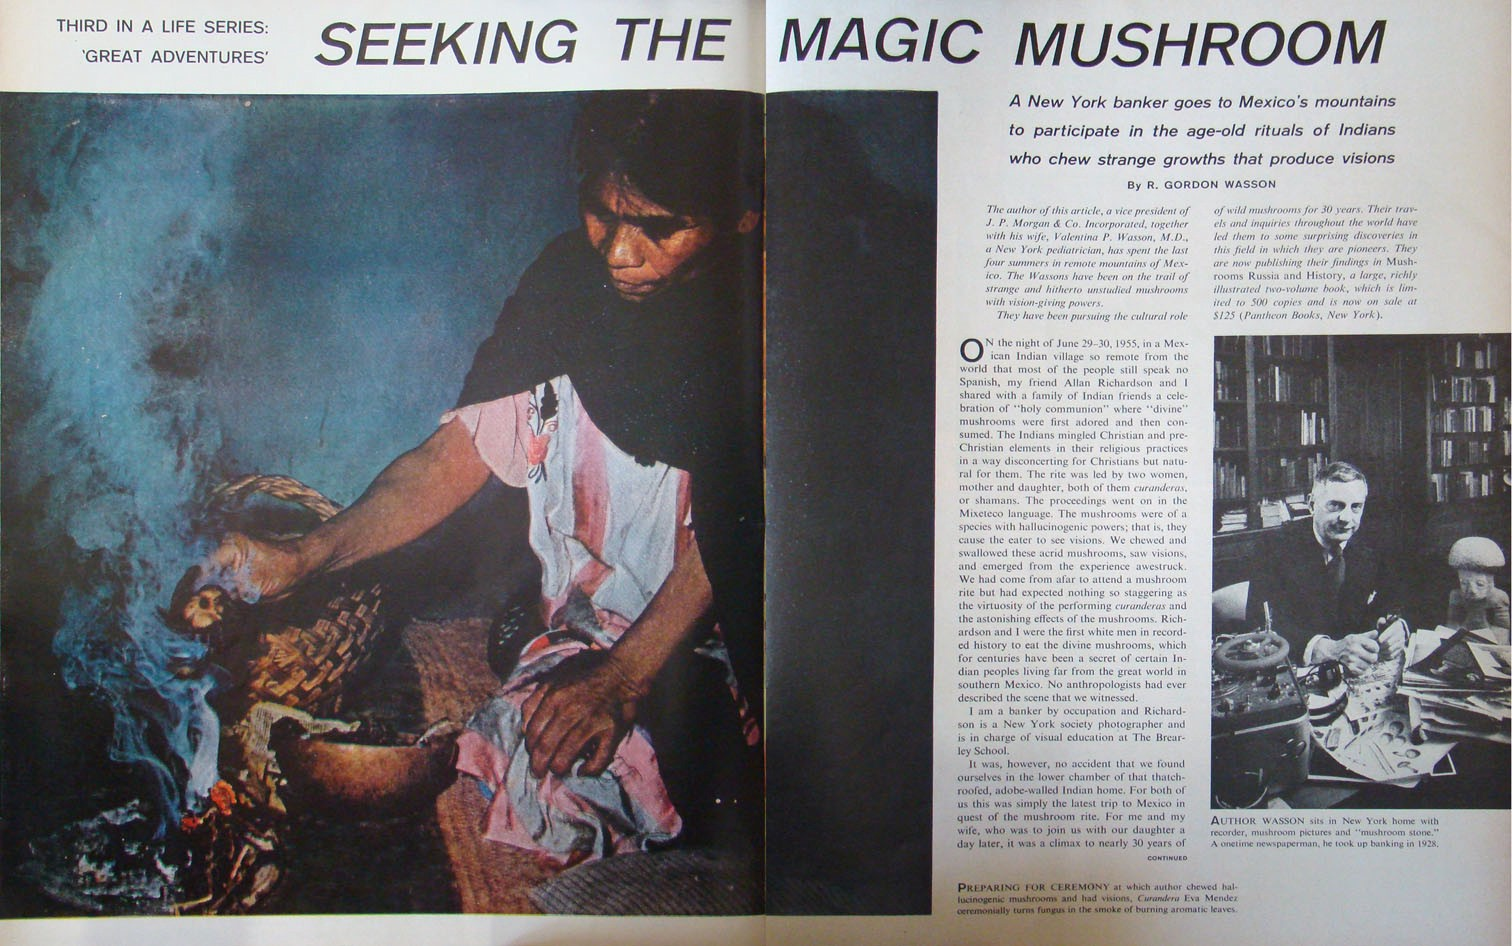 First pages of an aritlce in Life magazine featureing a picture of a woman waving incense